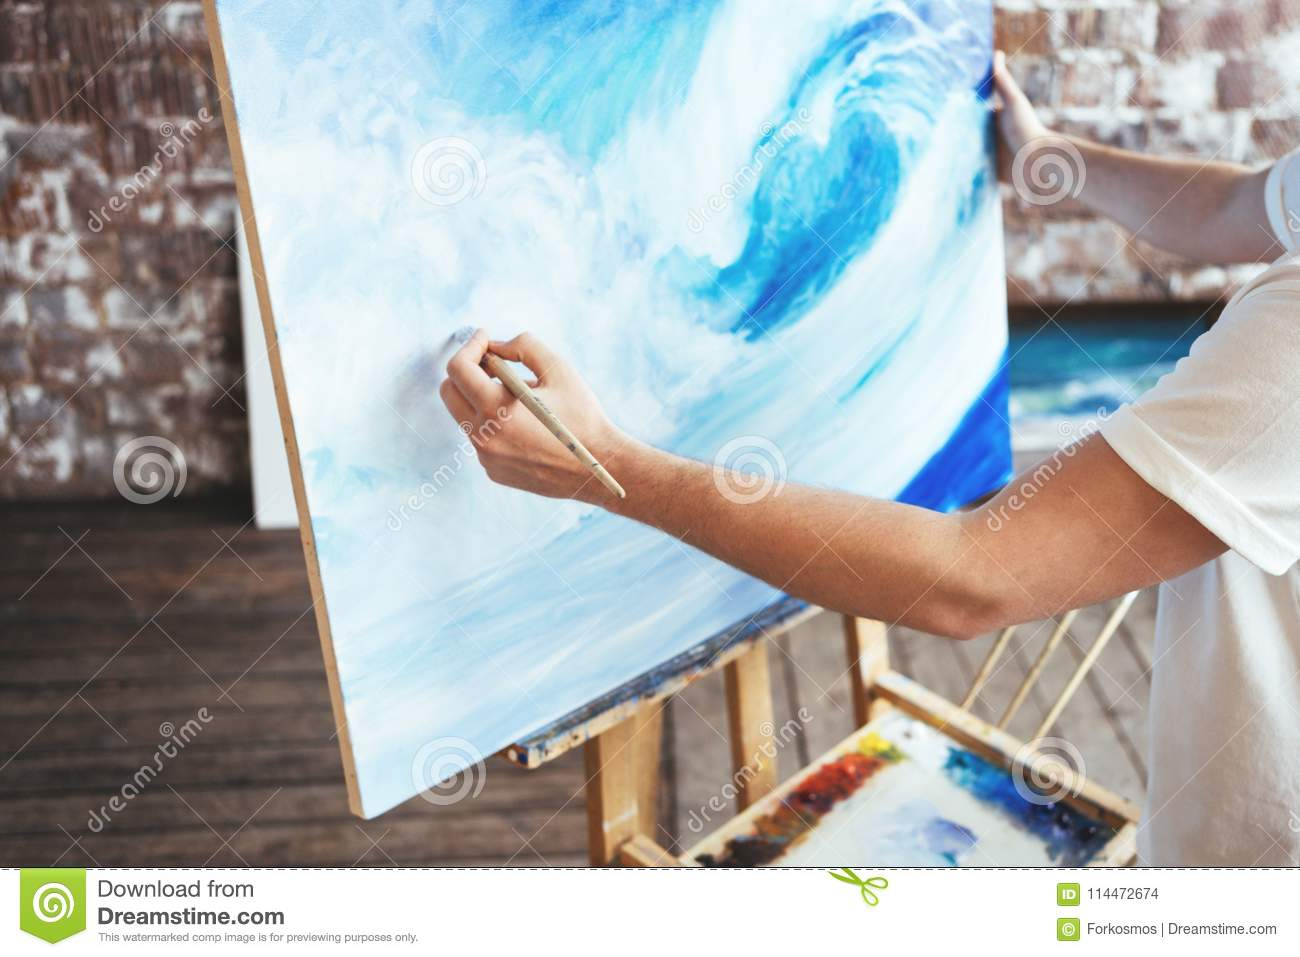 Download Hobby And Creative Occupation Concept. Artist Drawing With Oilpaint And Paintbrush In Studio Stock Photo - Image of leisure, canvas: 114472674